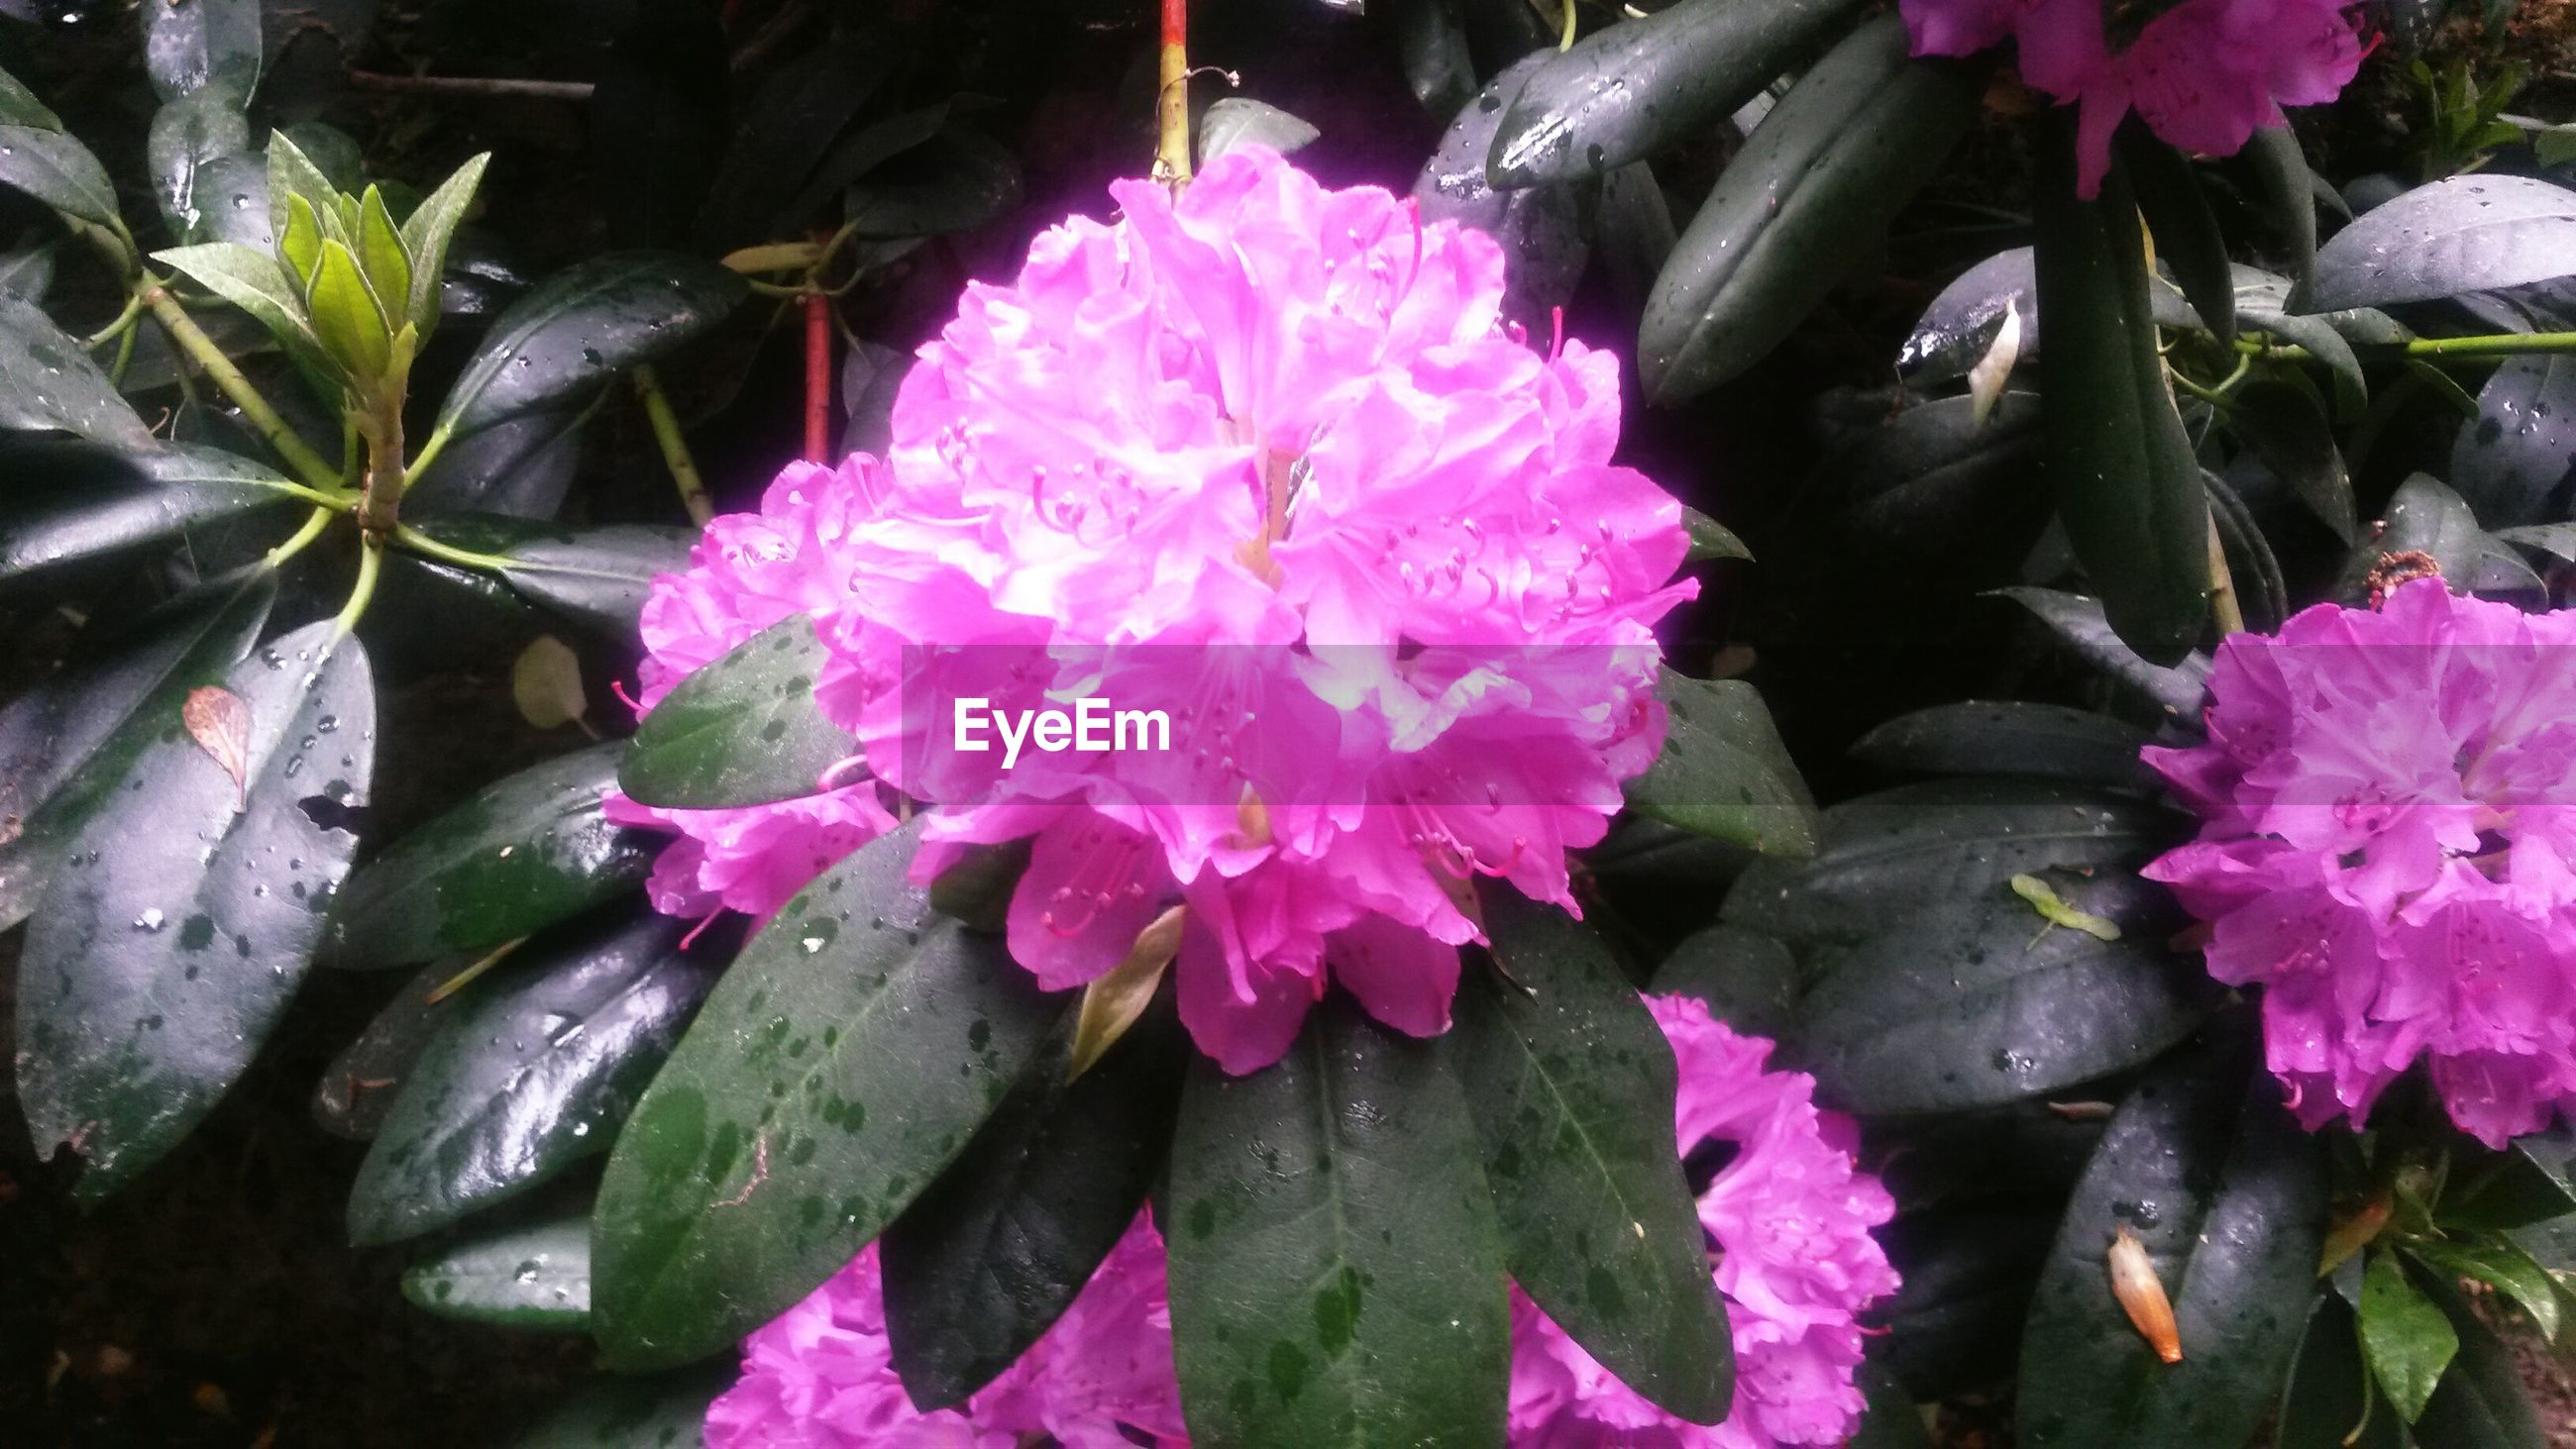 Pink flowers and wet leaves